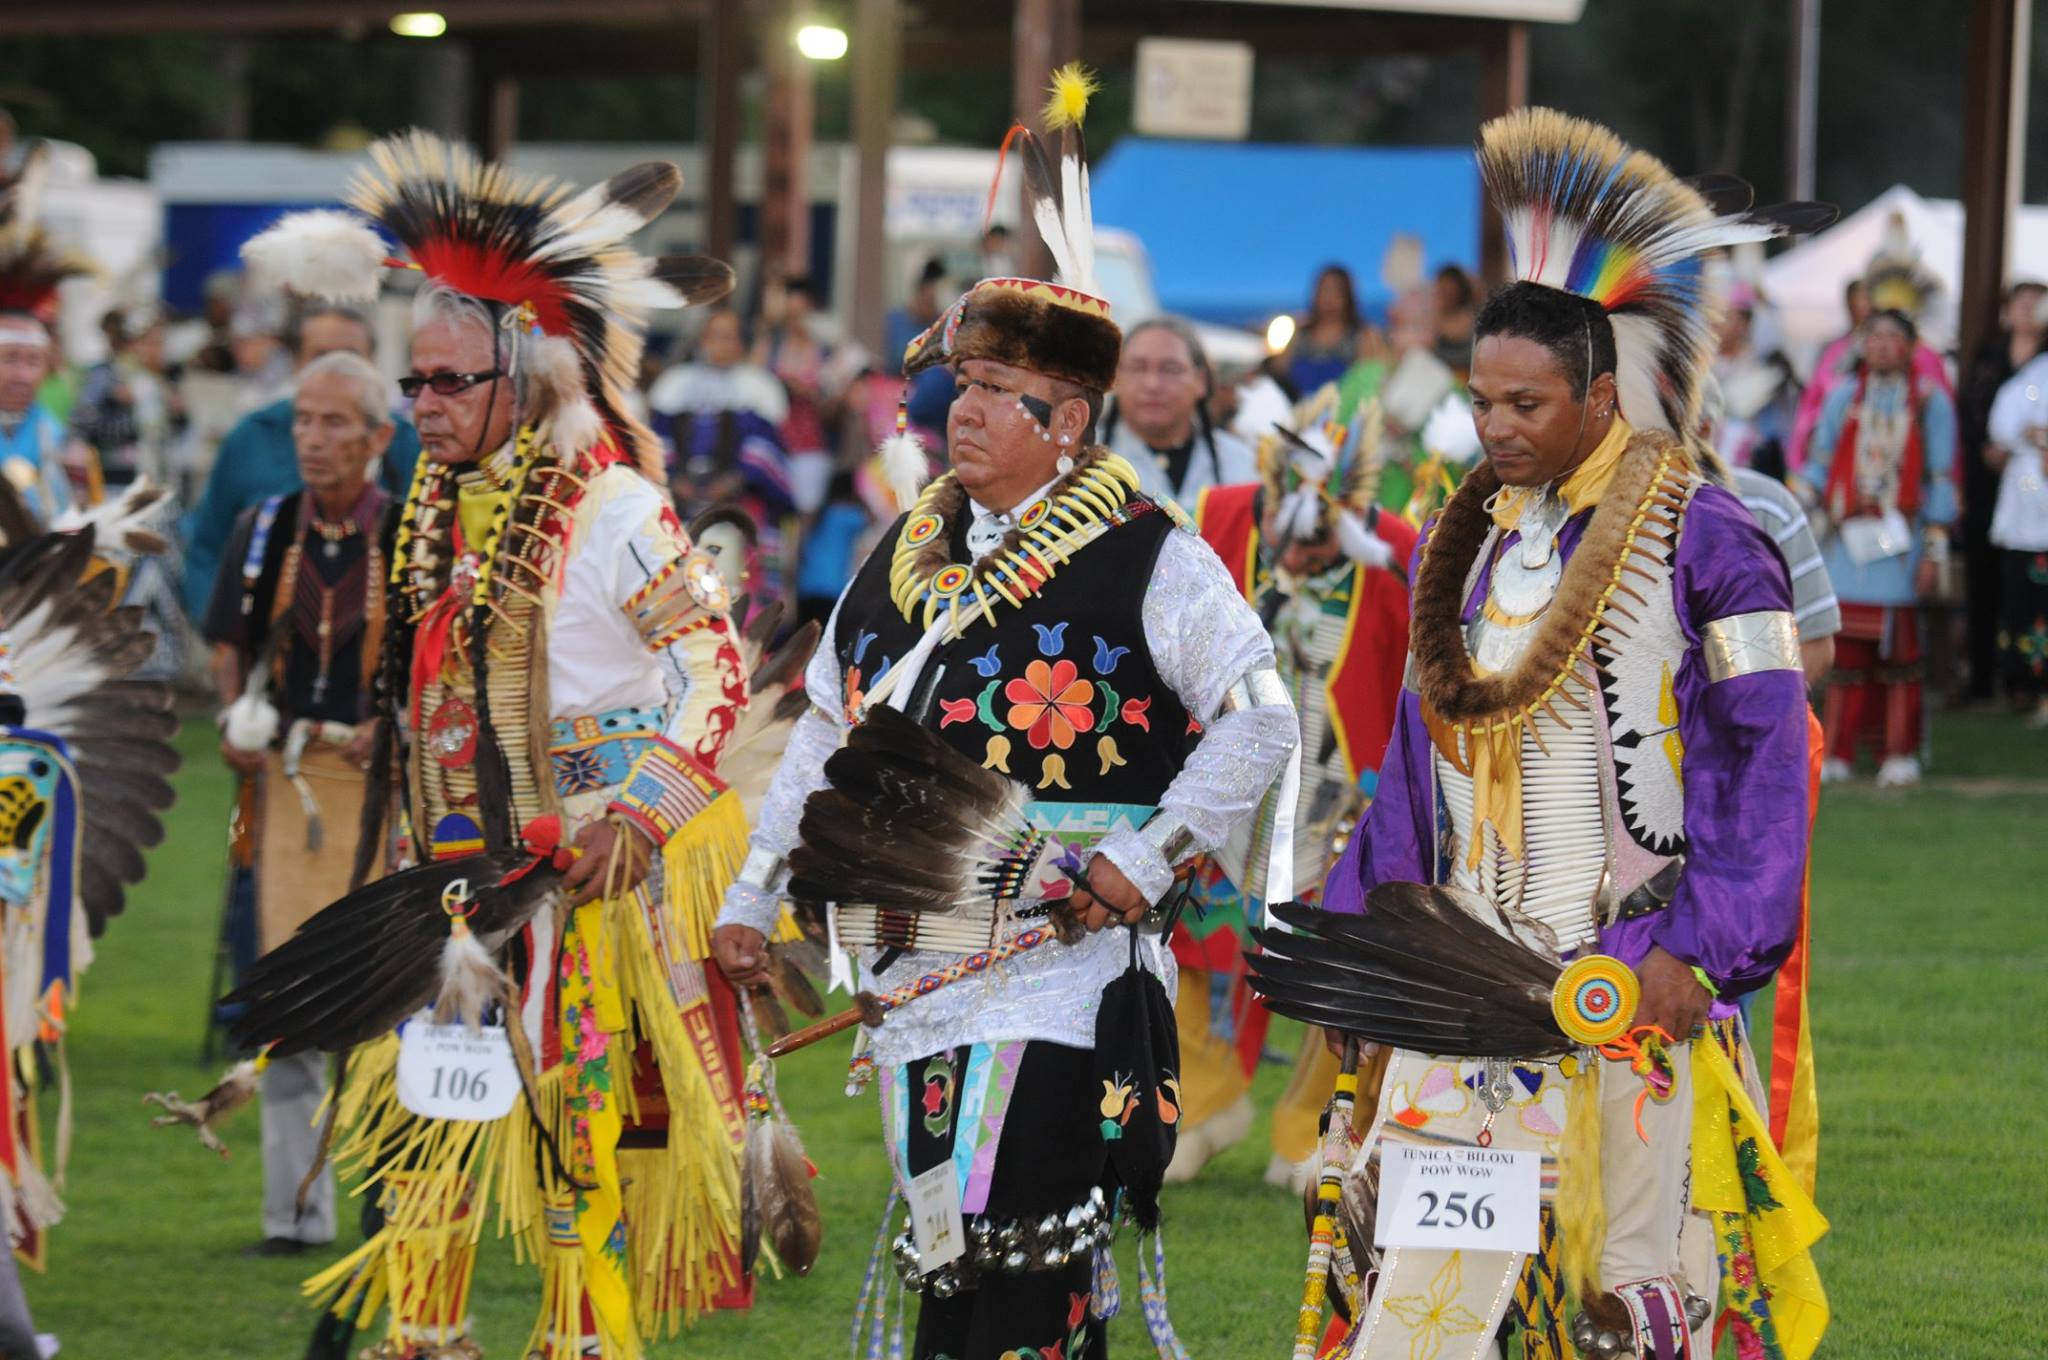 Tunica-Biloxi Tribe prepares to host 21st annual powwow in May